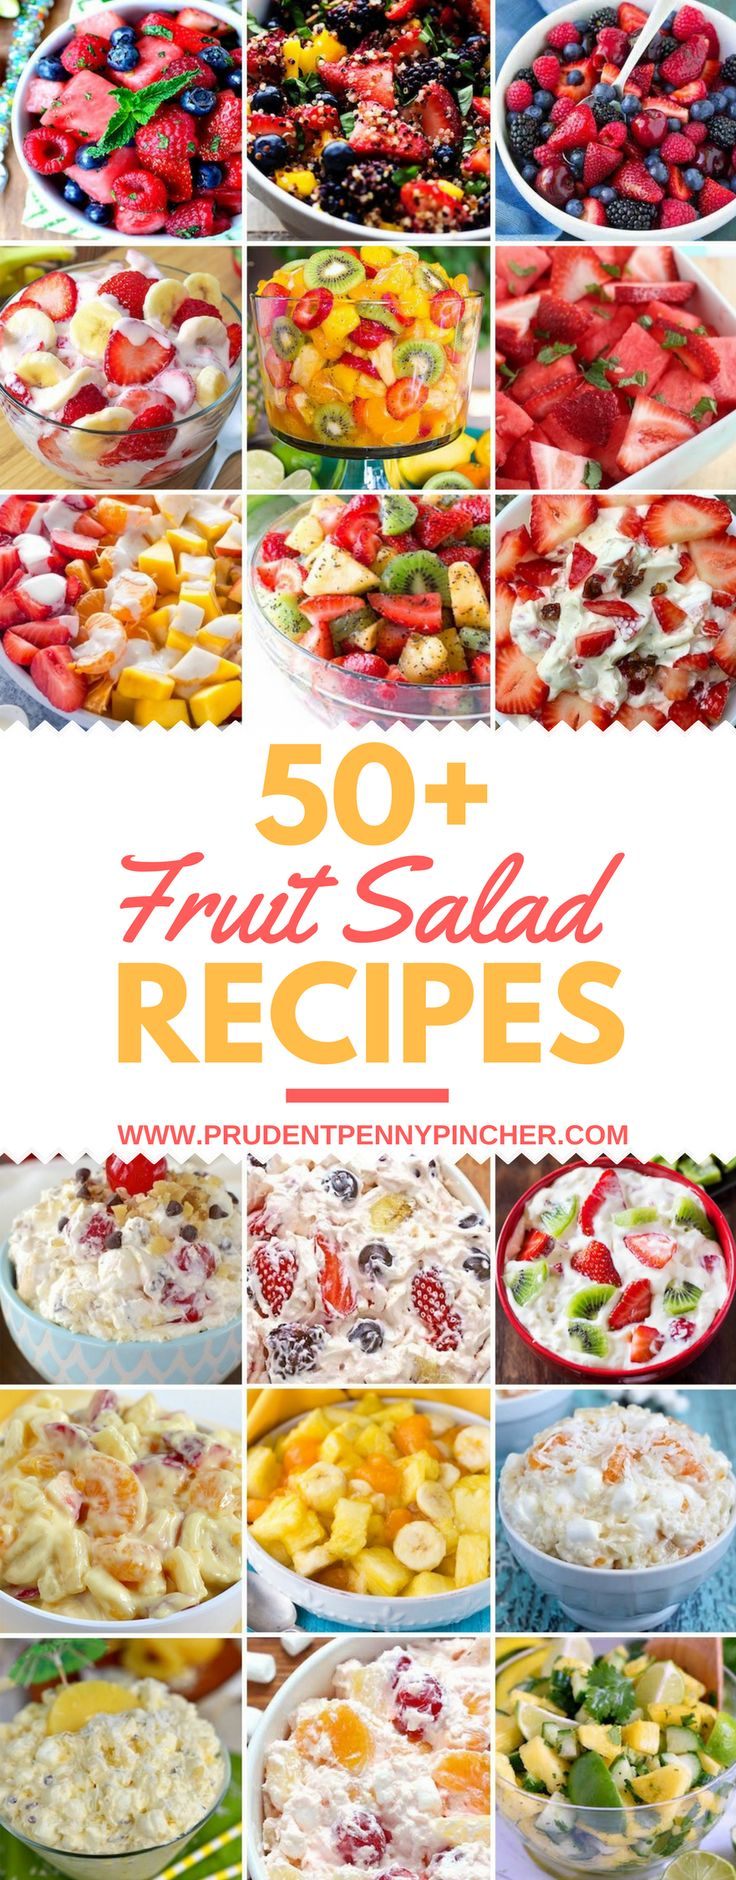 50 Best Fruit Salad Recipes